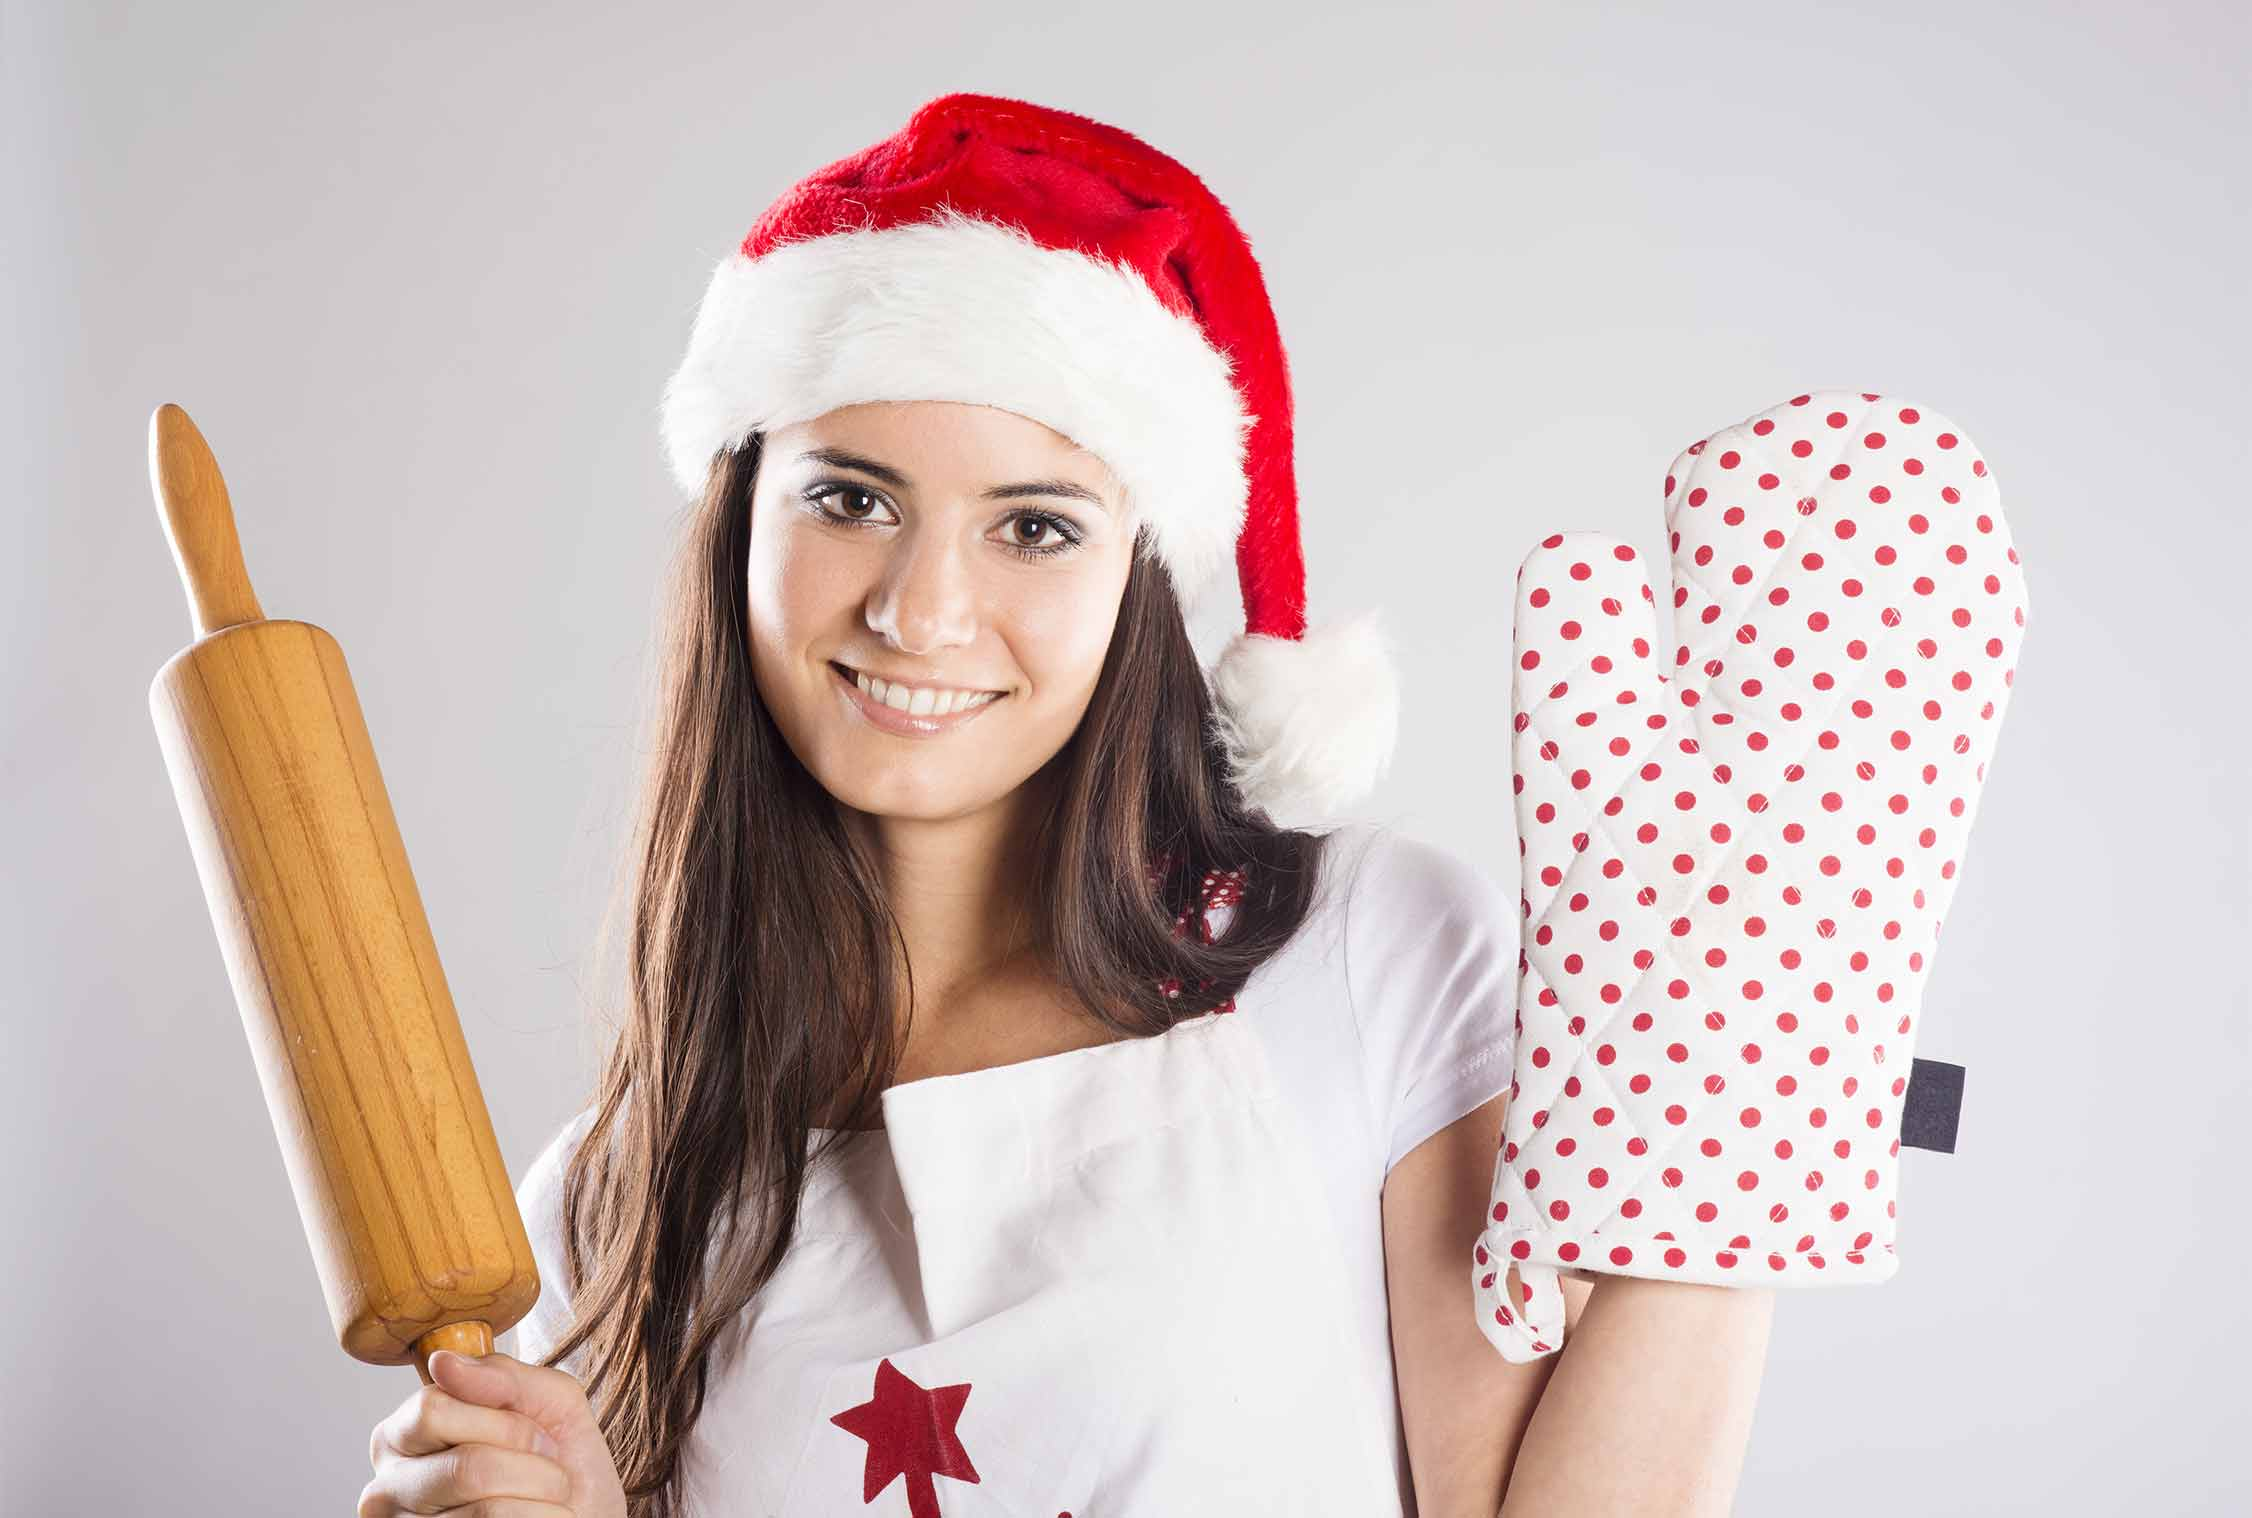 Girl with Christmas hat, oven glove and rolling pin